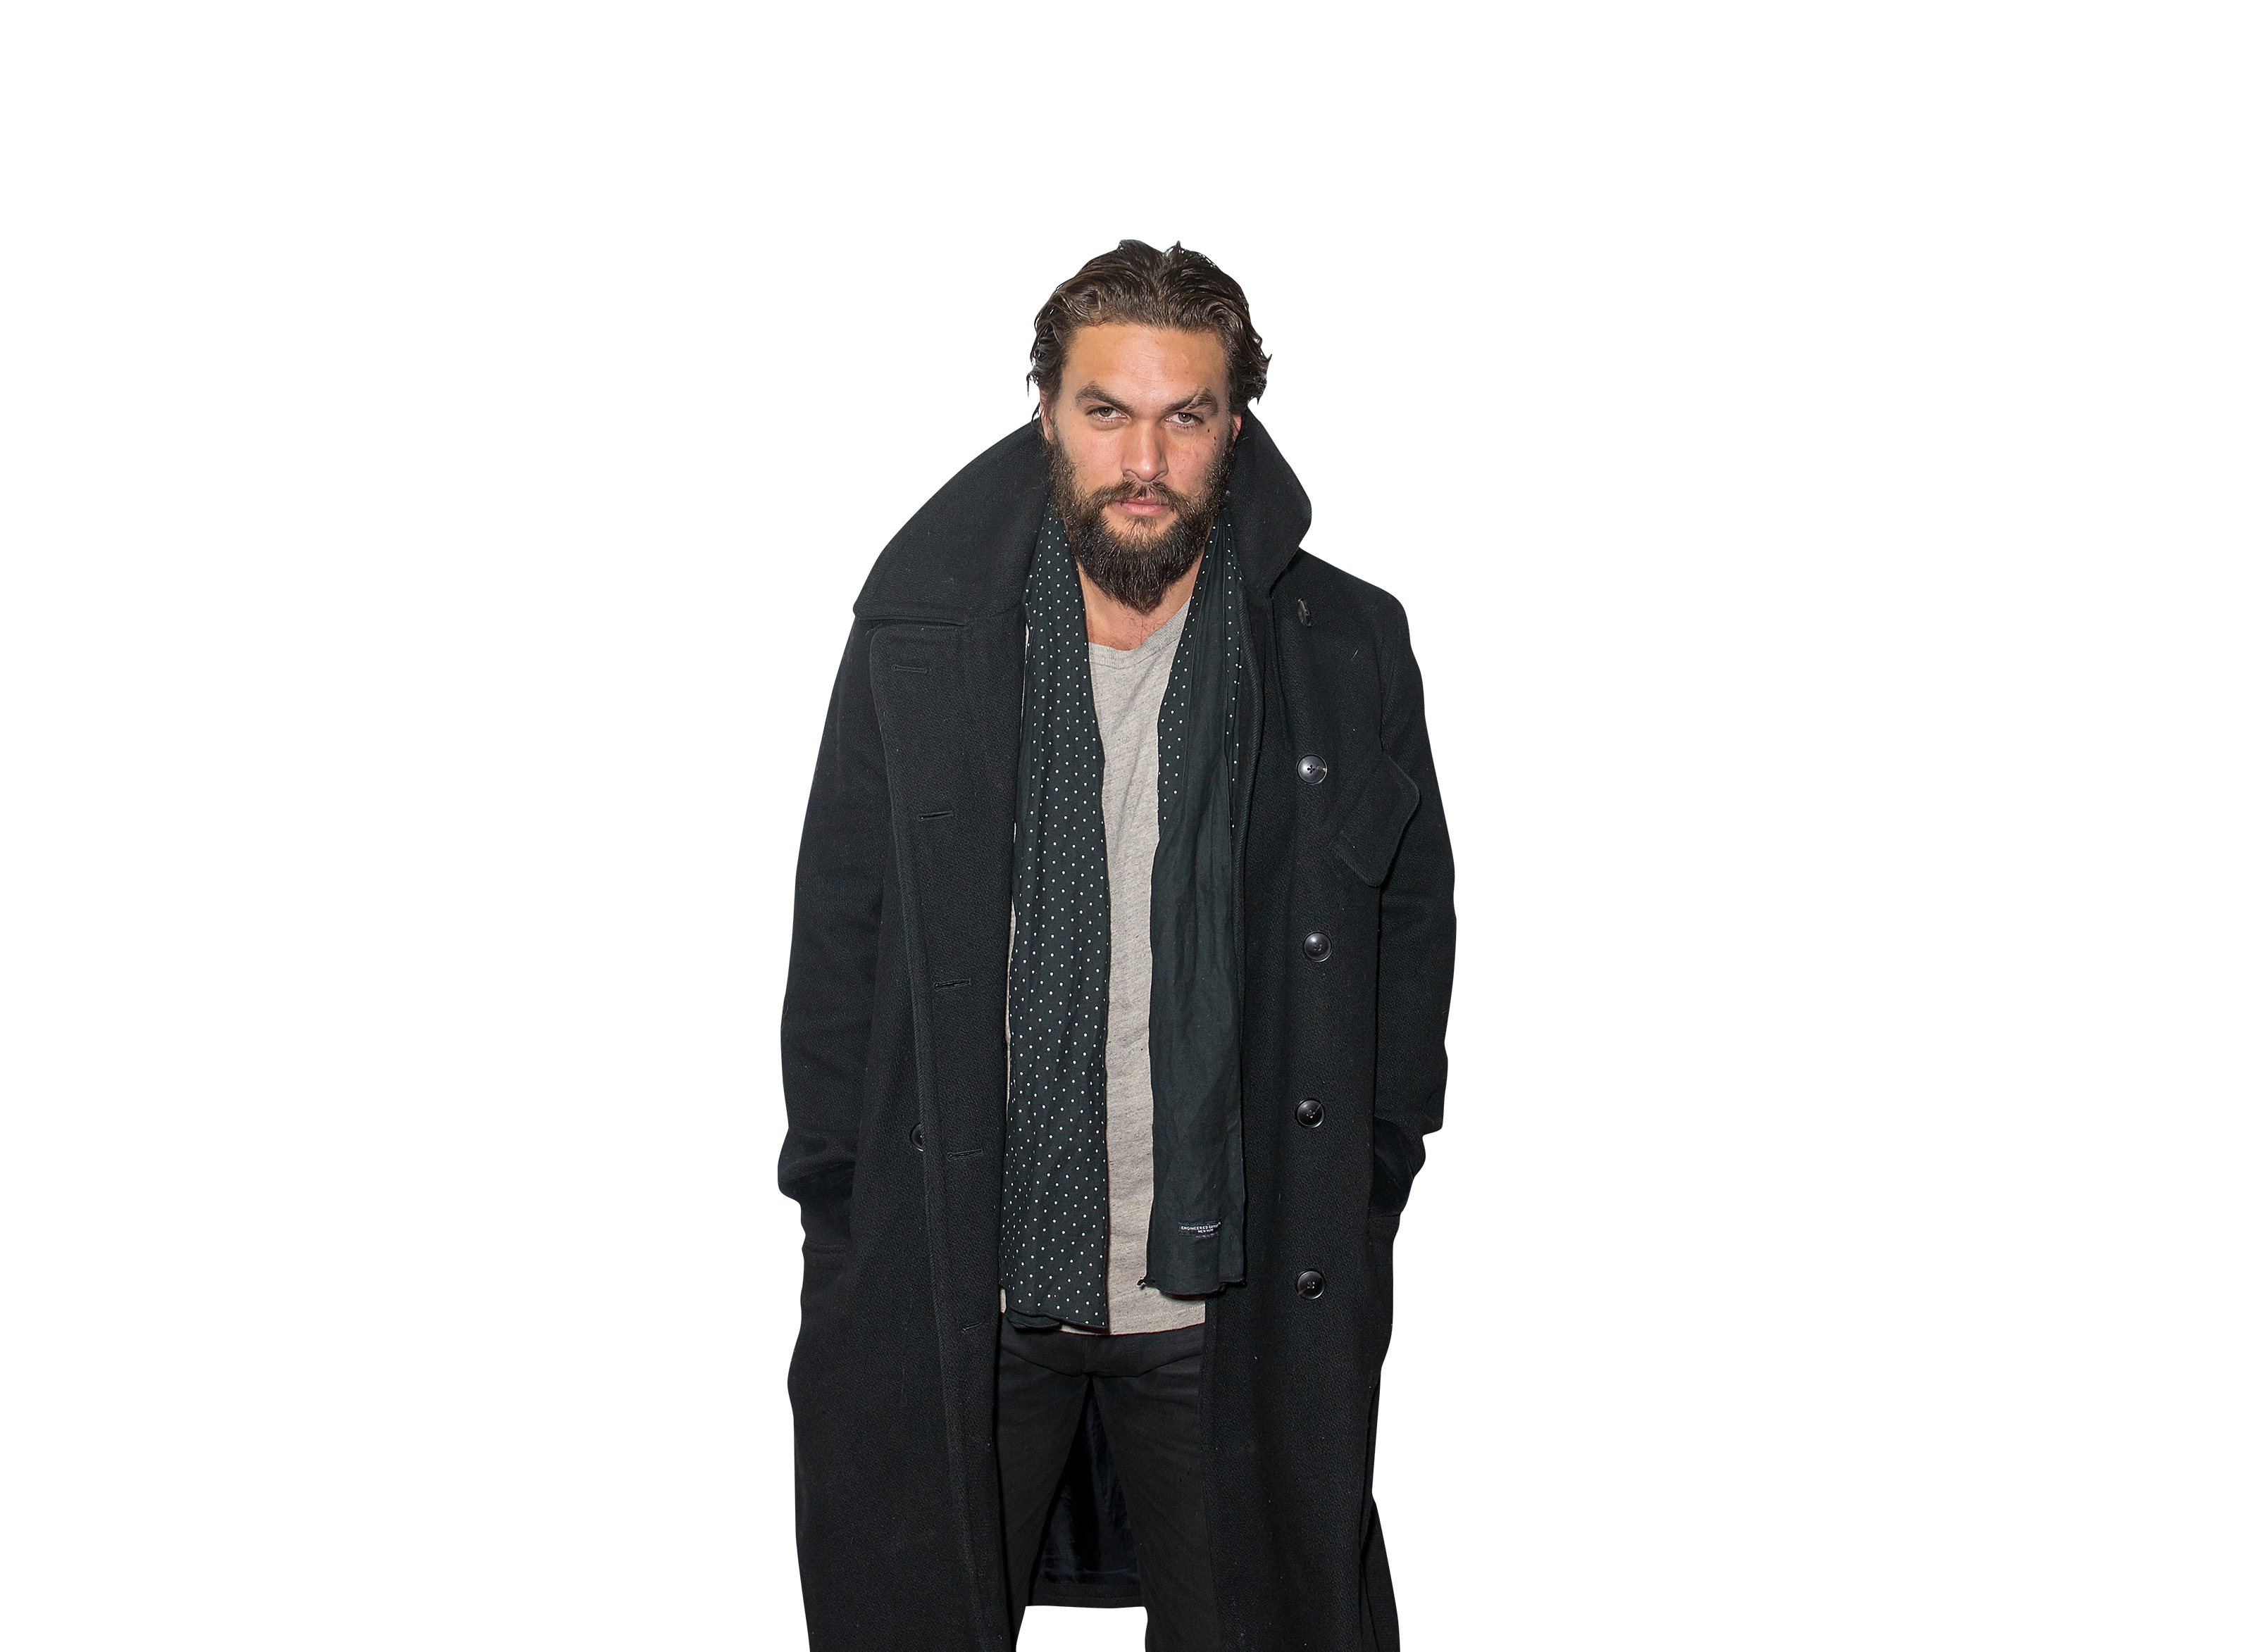 Jason Momoa Wallpaper